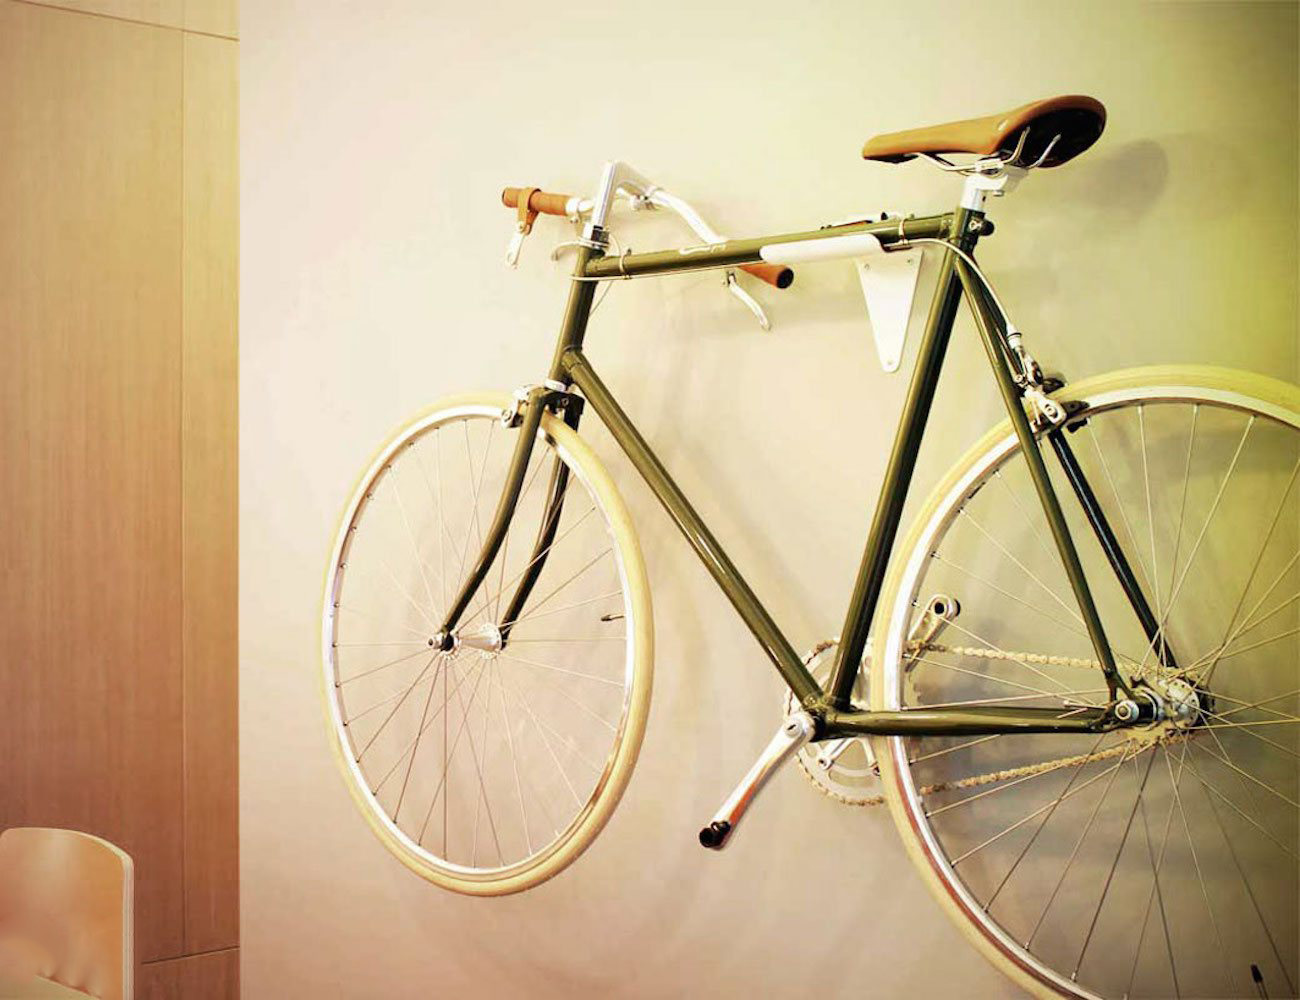 Flipcrown+%26%238211%3B+A+Useful+Accessory+That+Makes+Any+Bike+Fold+Flat+For+Storage